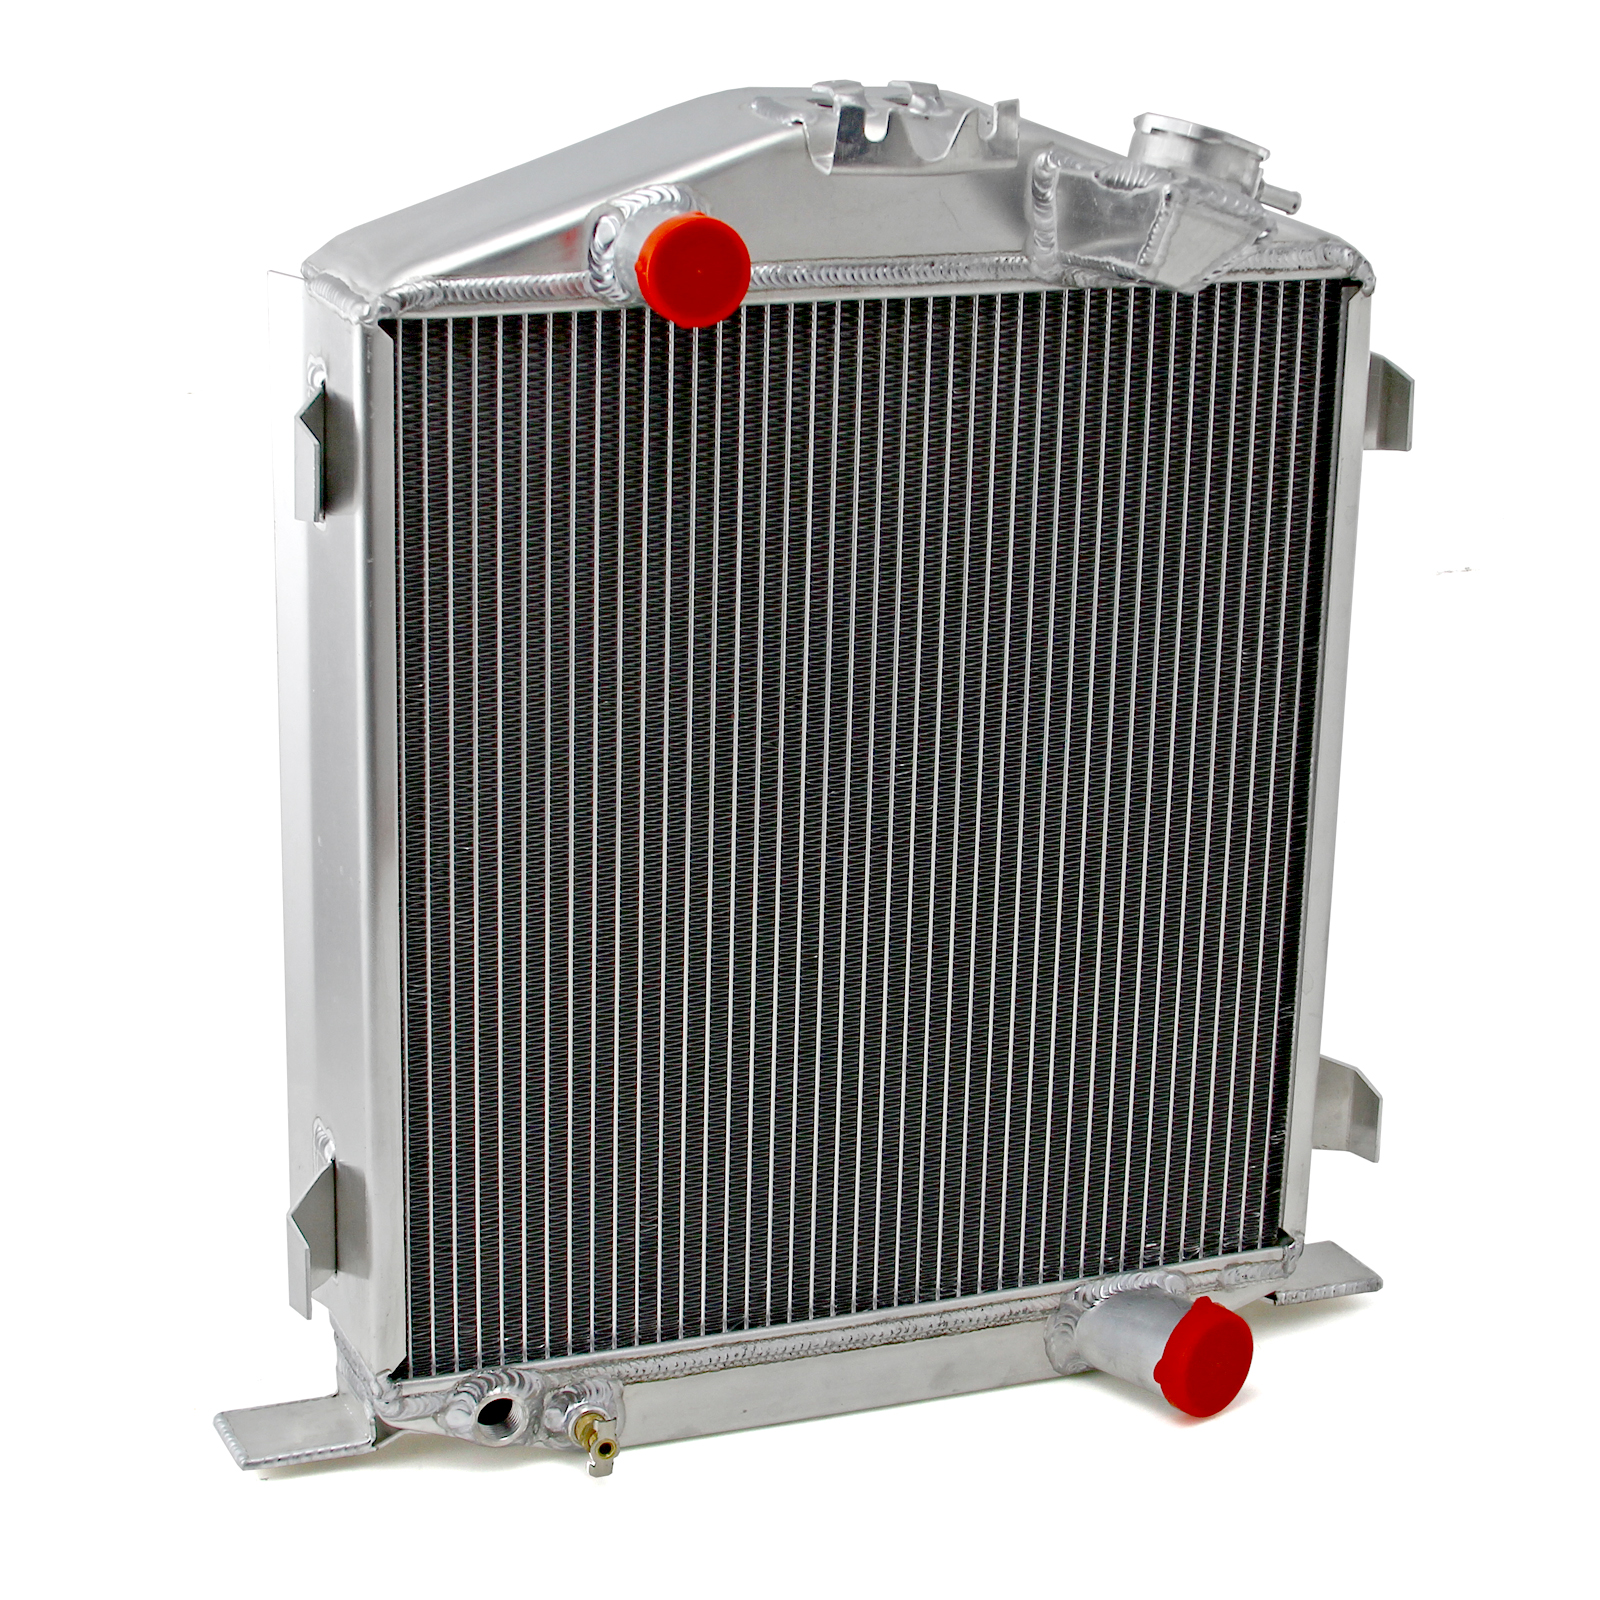 Ford Roadster High Boy 1932 Aluminum Radiator Polished (Short)